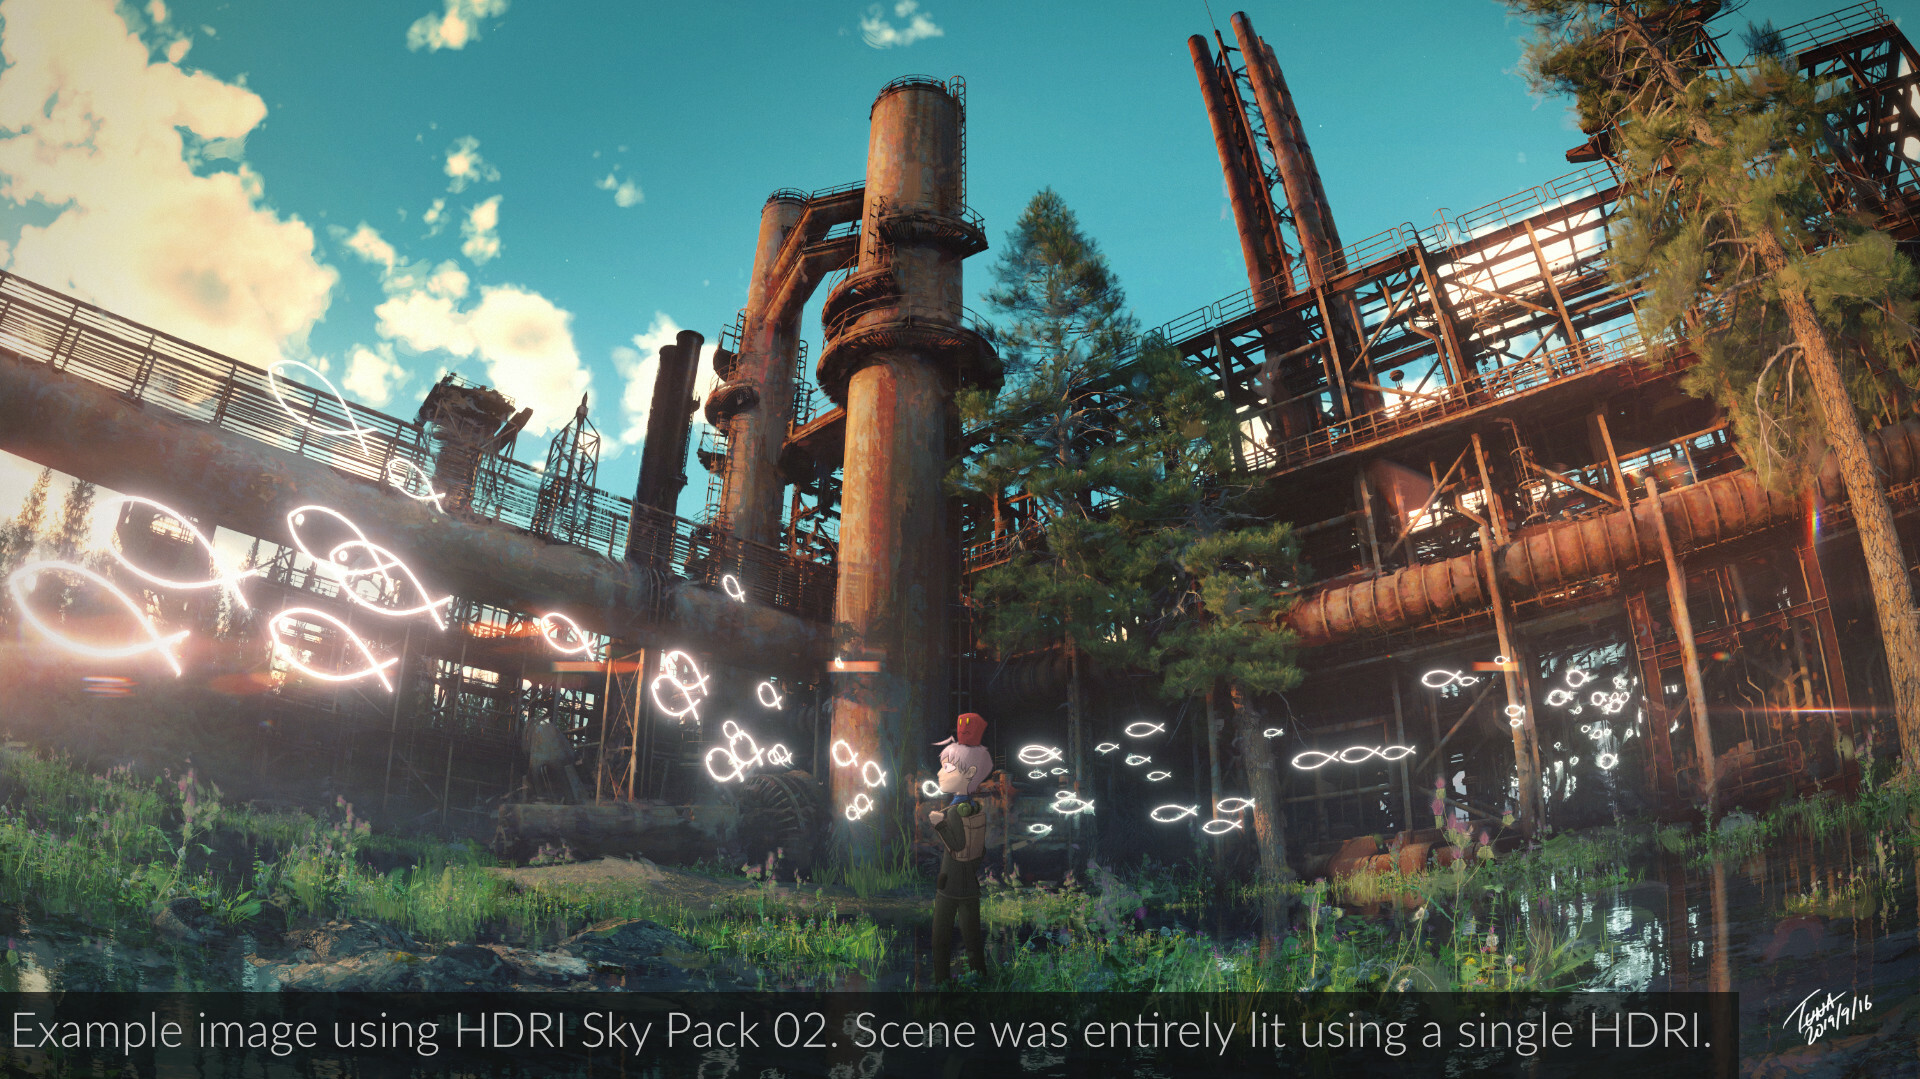 Of course, these HDRIs have proven effective in making beautiful images! This is one of my own images from SideTrip!